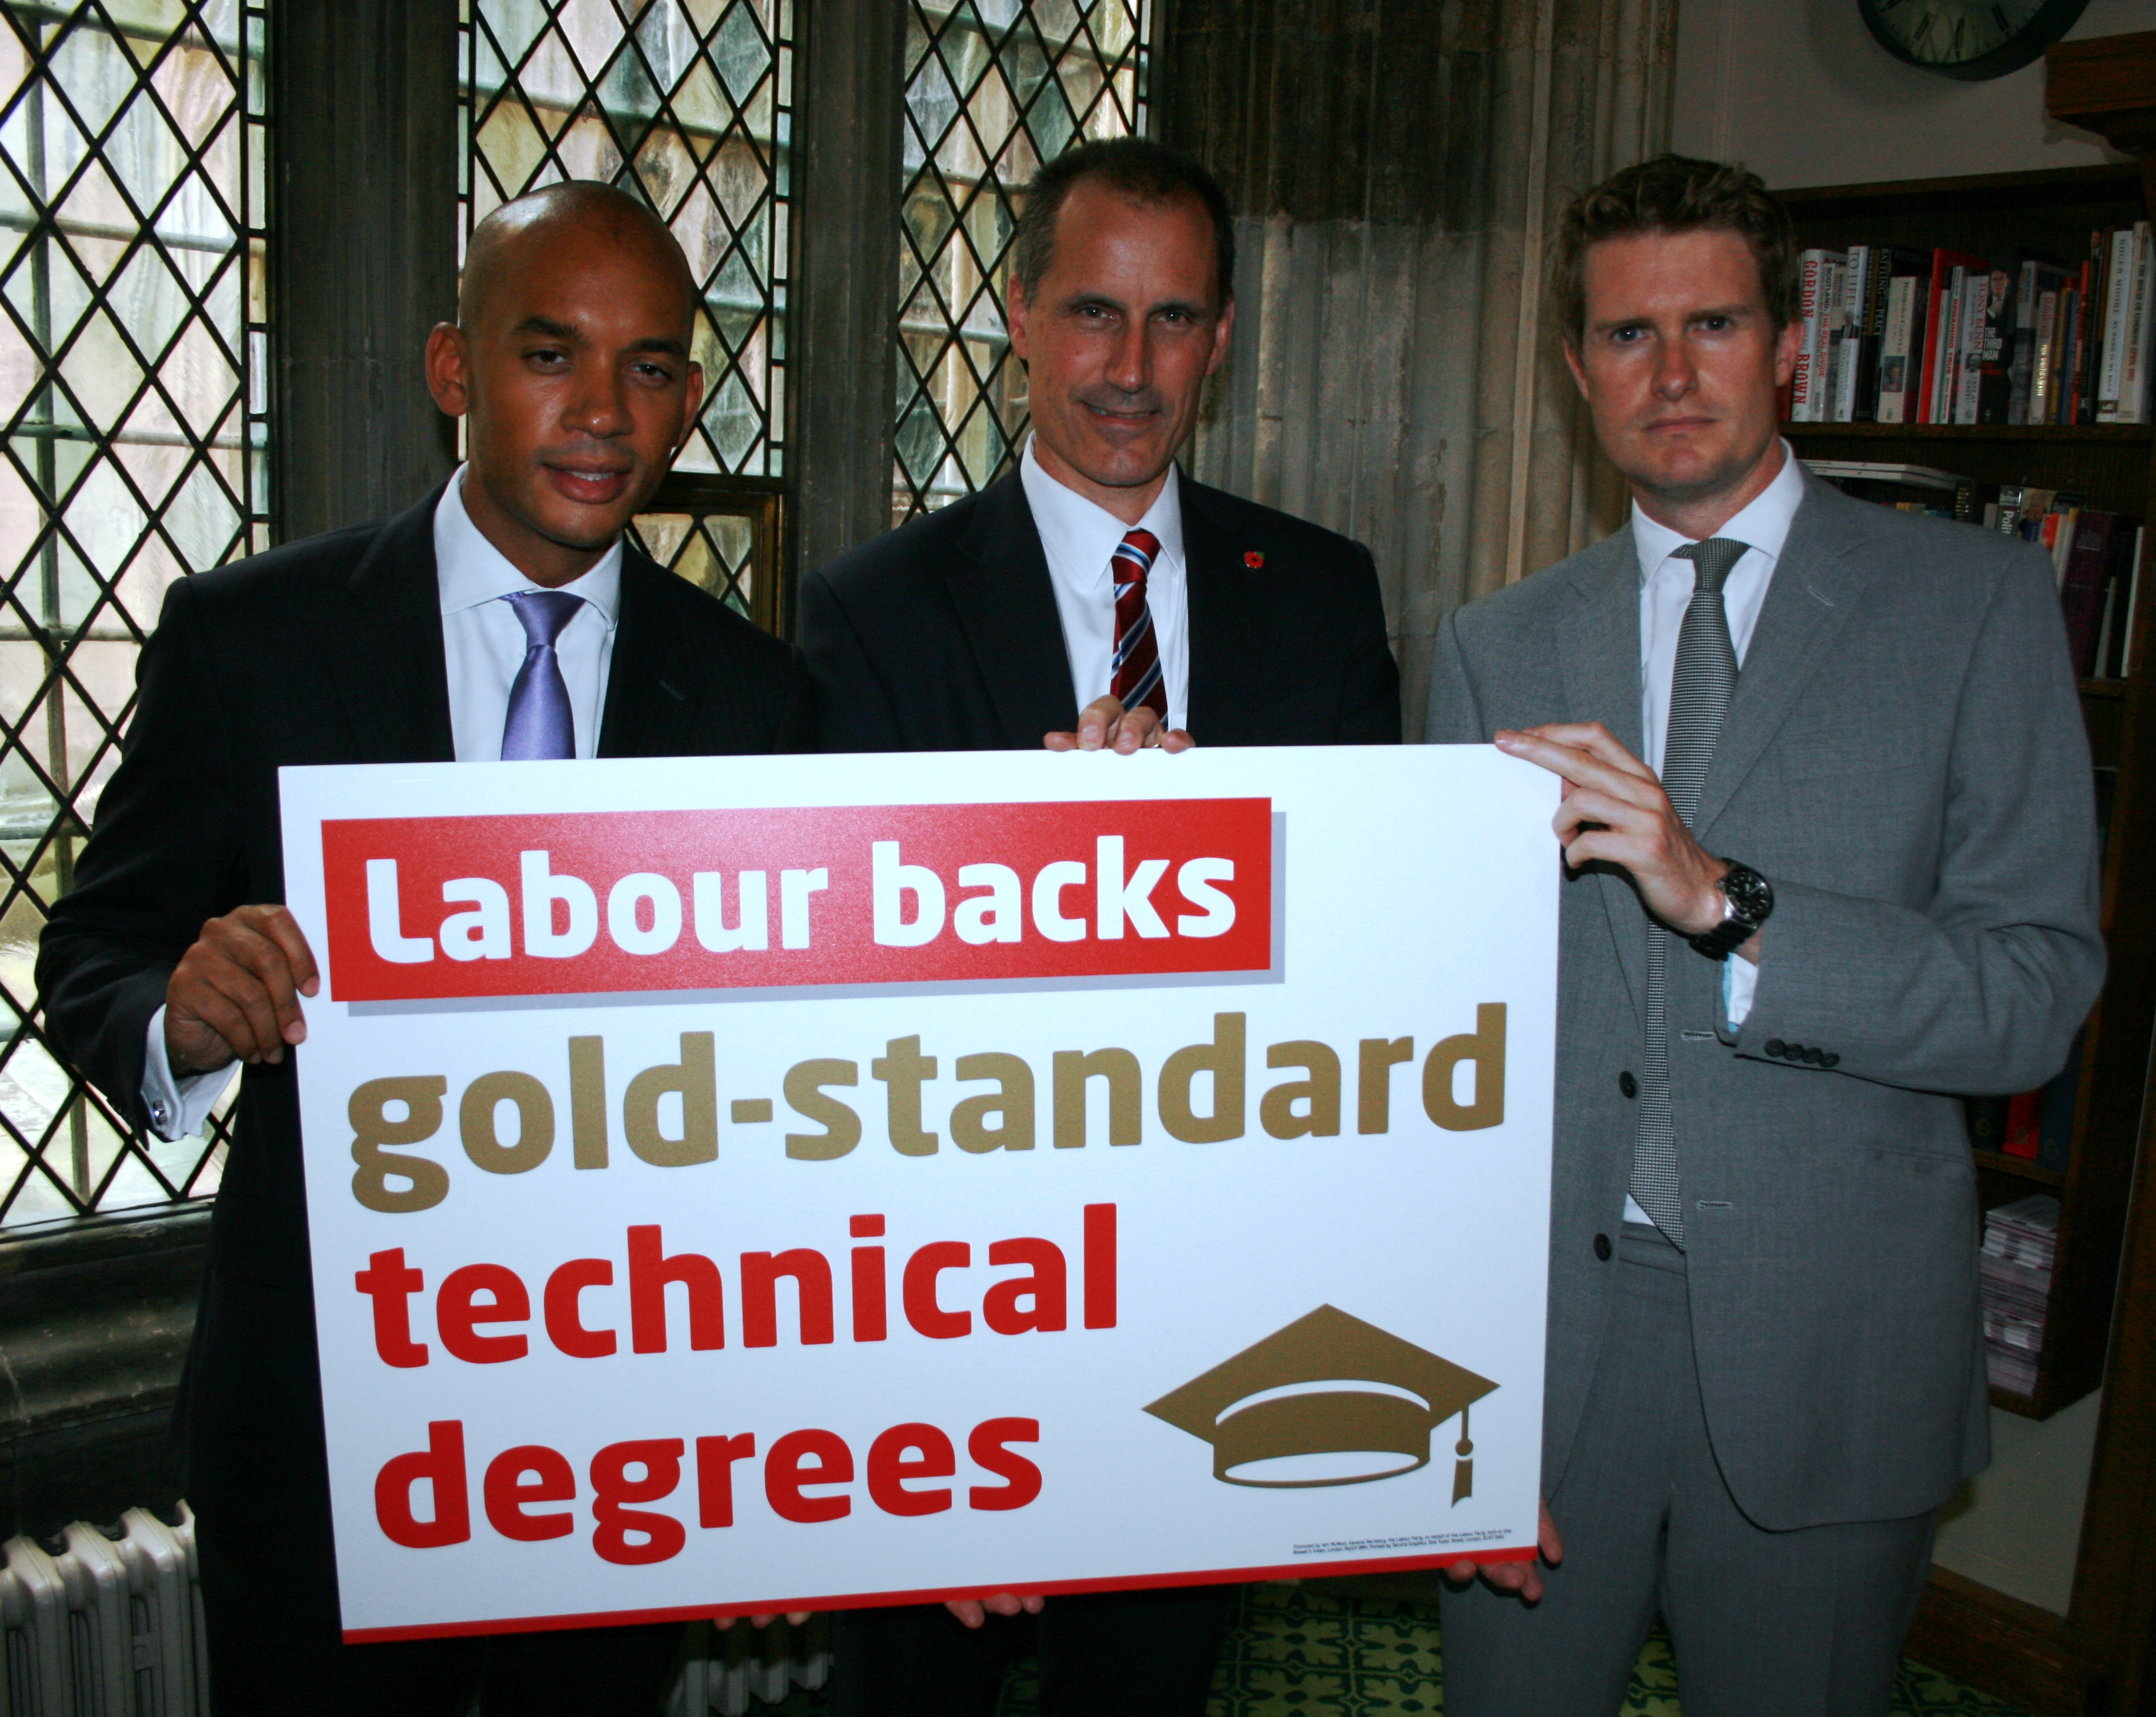 Shadow Business Secretary Chuka Umunna, Sefton Central Labour MP Bill Esterson and Shadow Education Secretary Tristram Hunt back Gold Standard Technical Degrees.